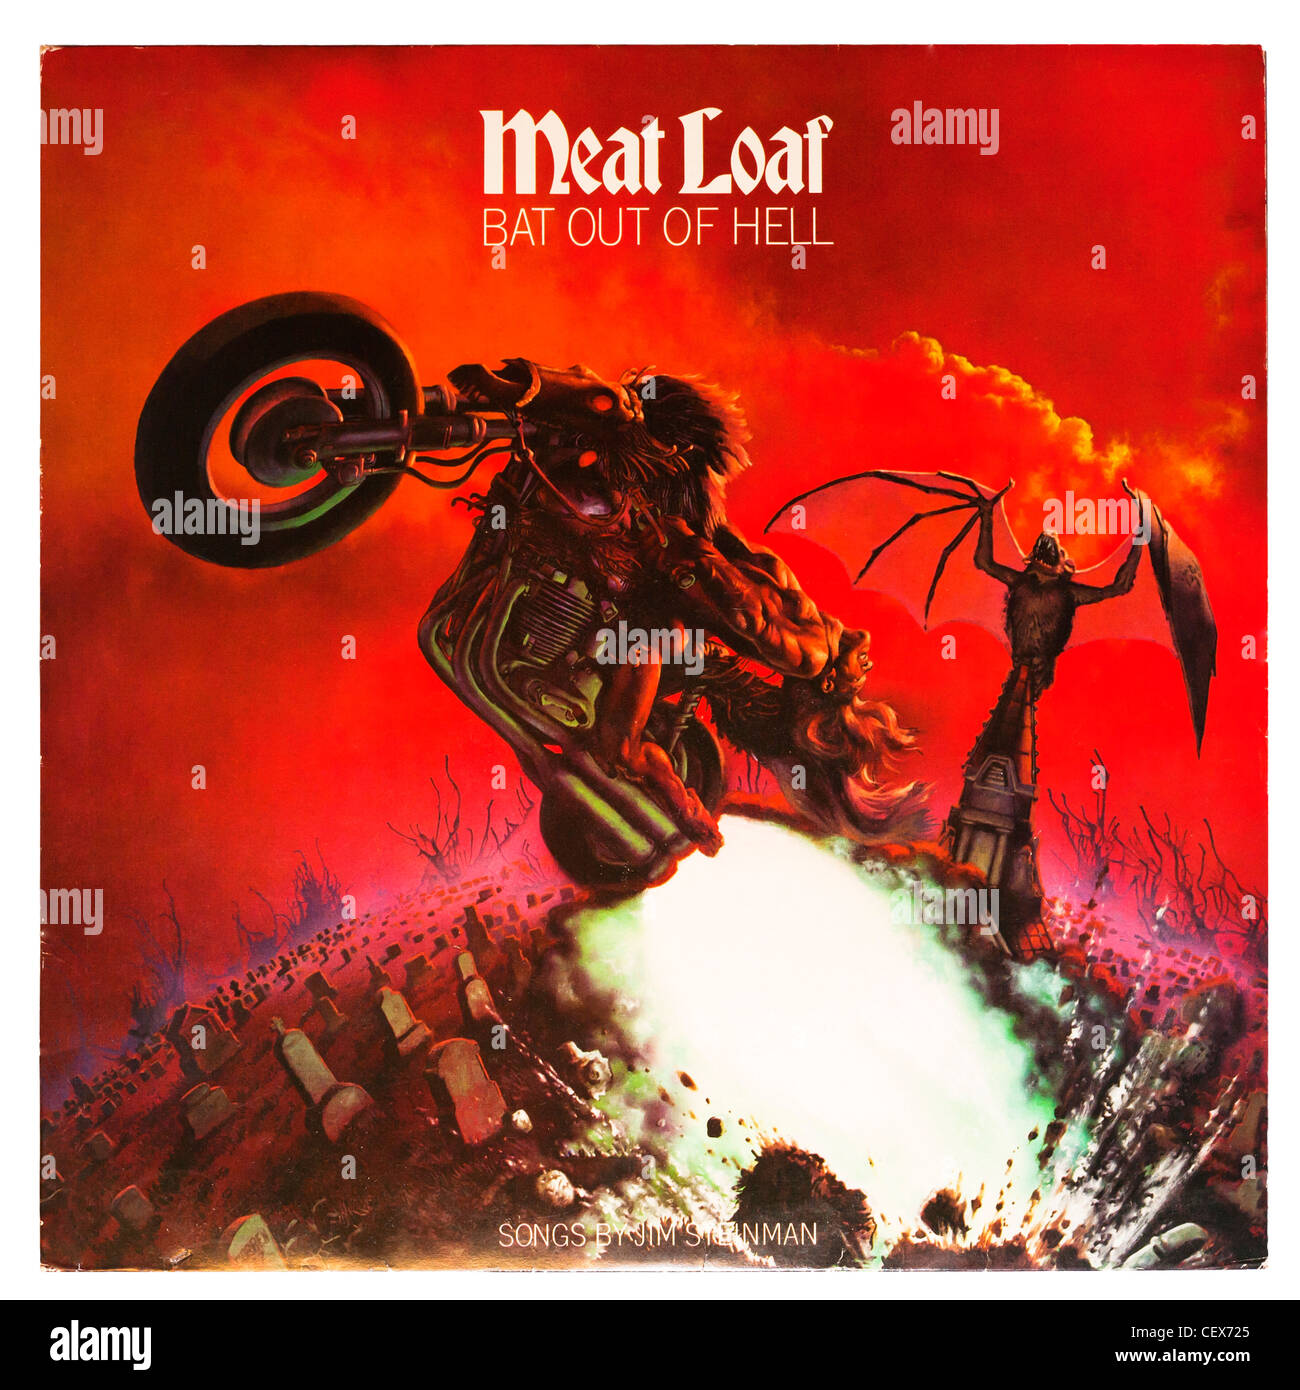 Un album vinyl record , Meat Loaf , Bat out of Hell sur fond blanc Photo Stock